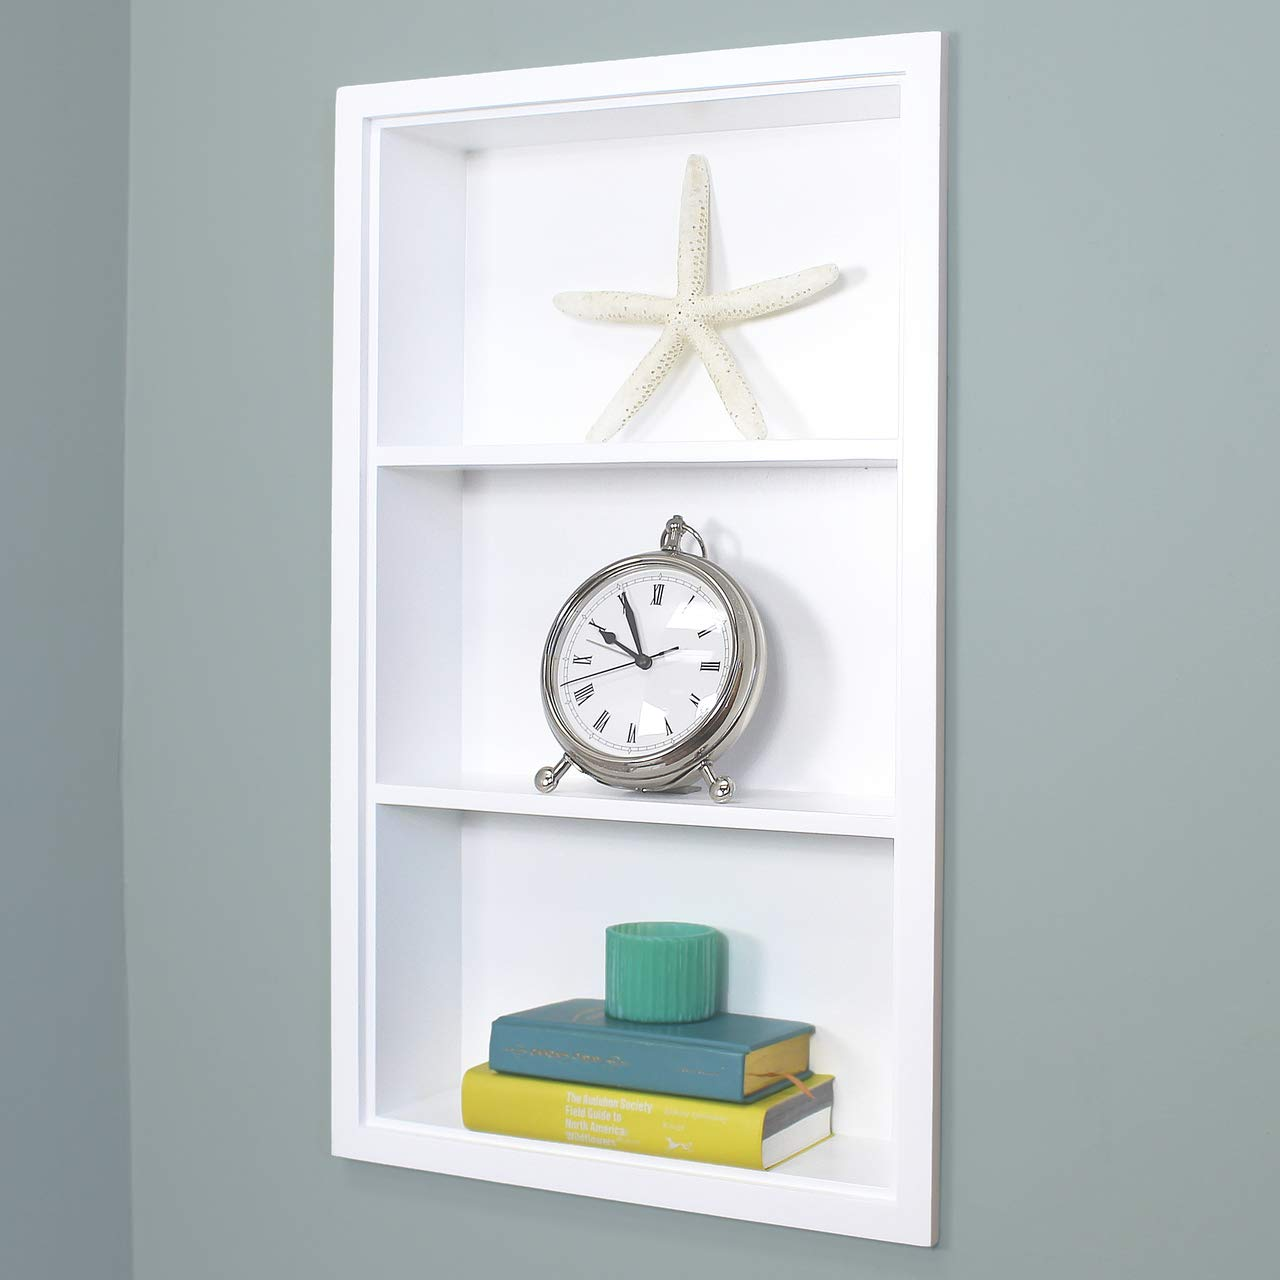 Fox Hollow Furnishings 14x24 Recessed White Sloane Wall Niche w/Plain Back